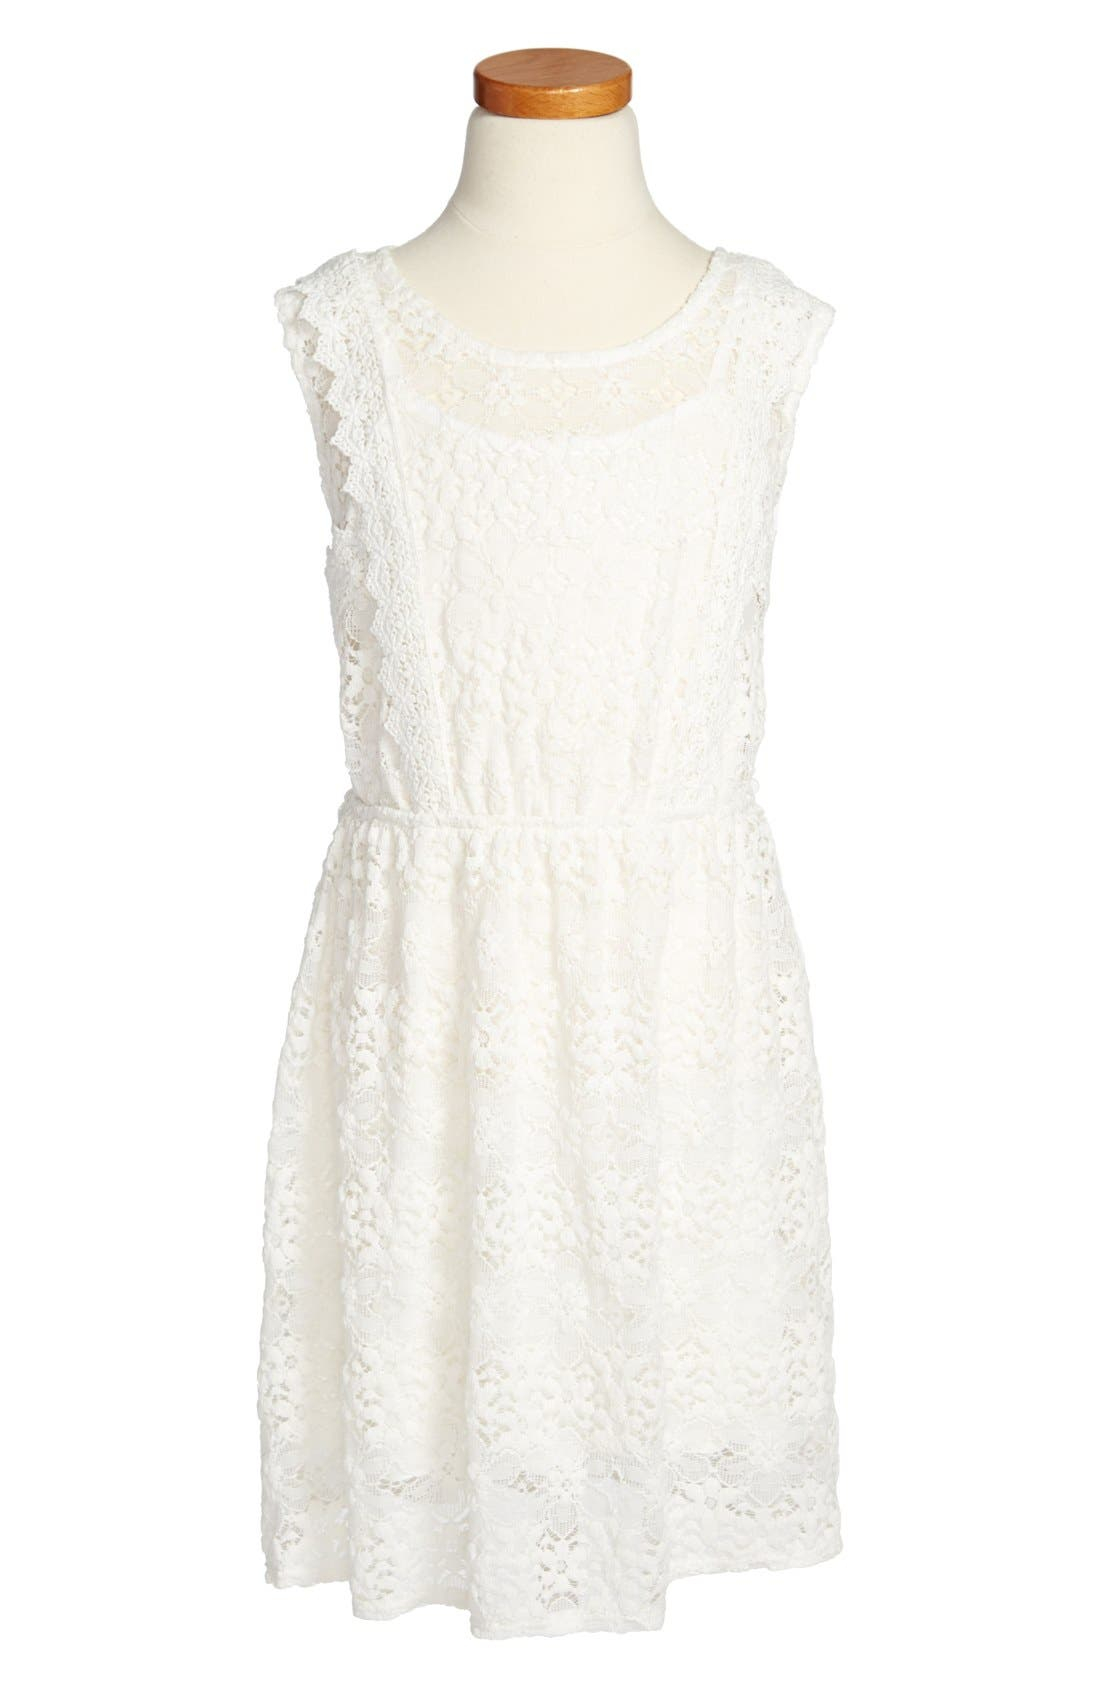 Main Image - Kiddo Ivory Lace Dress (Big Girls)